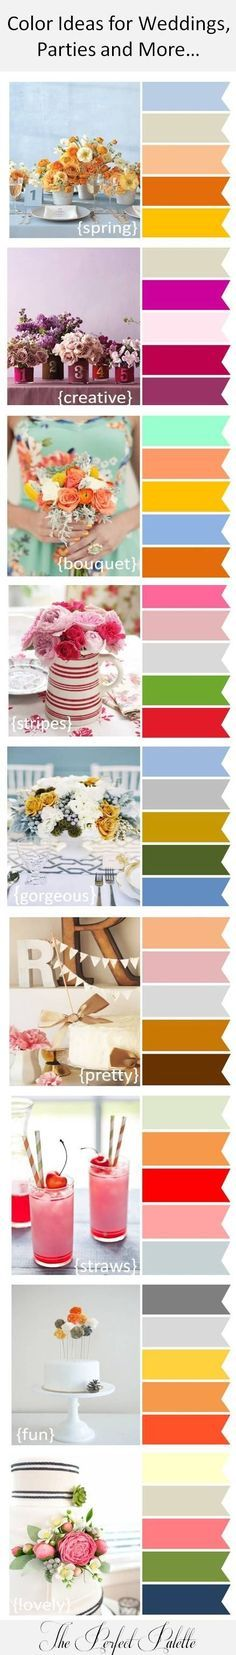 Color Ideas for Weddings, Parties and More! http://www.theperfectpalette.com/2012/09/color-ideas-for-weddings-parties-and.html